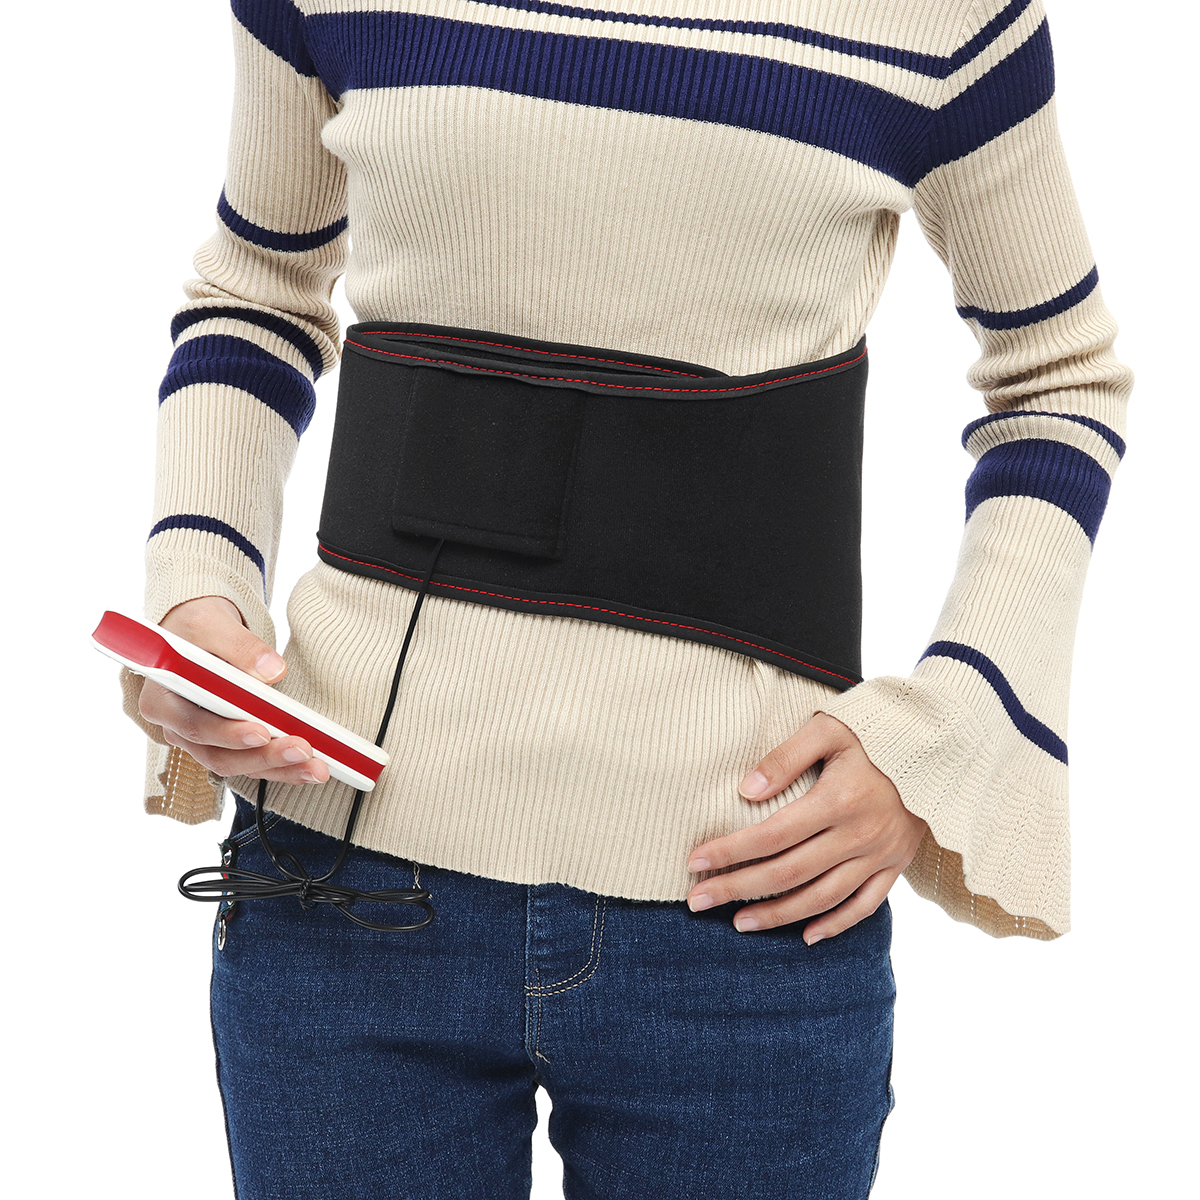 USB Waist Belt Electric Heating Pad Back Stomach Pain